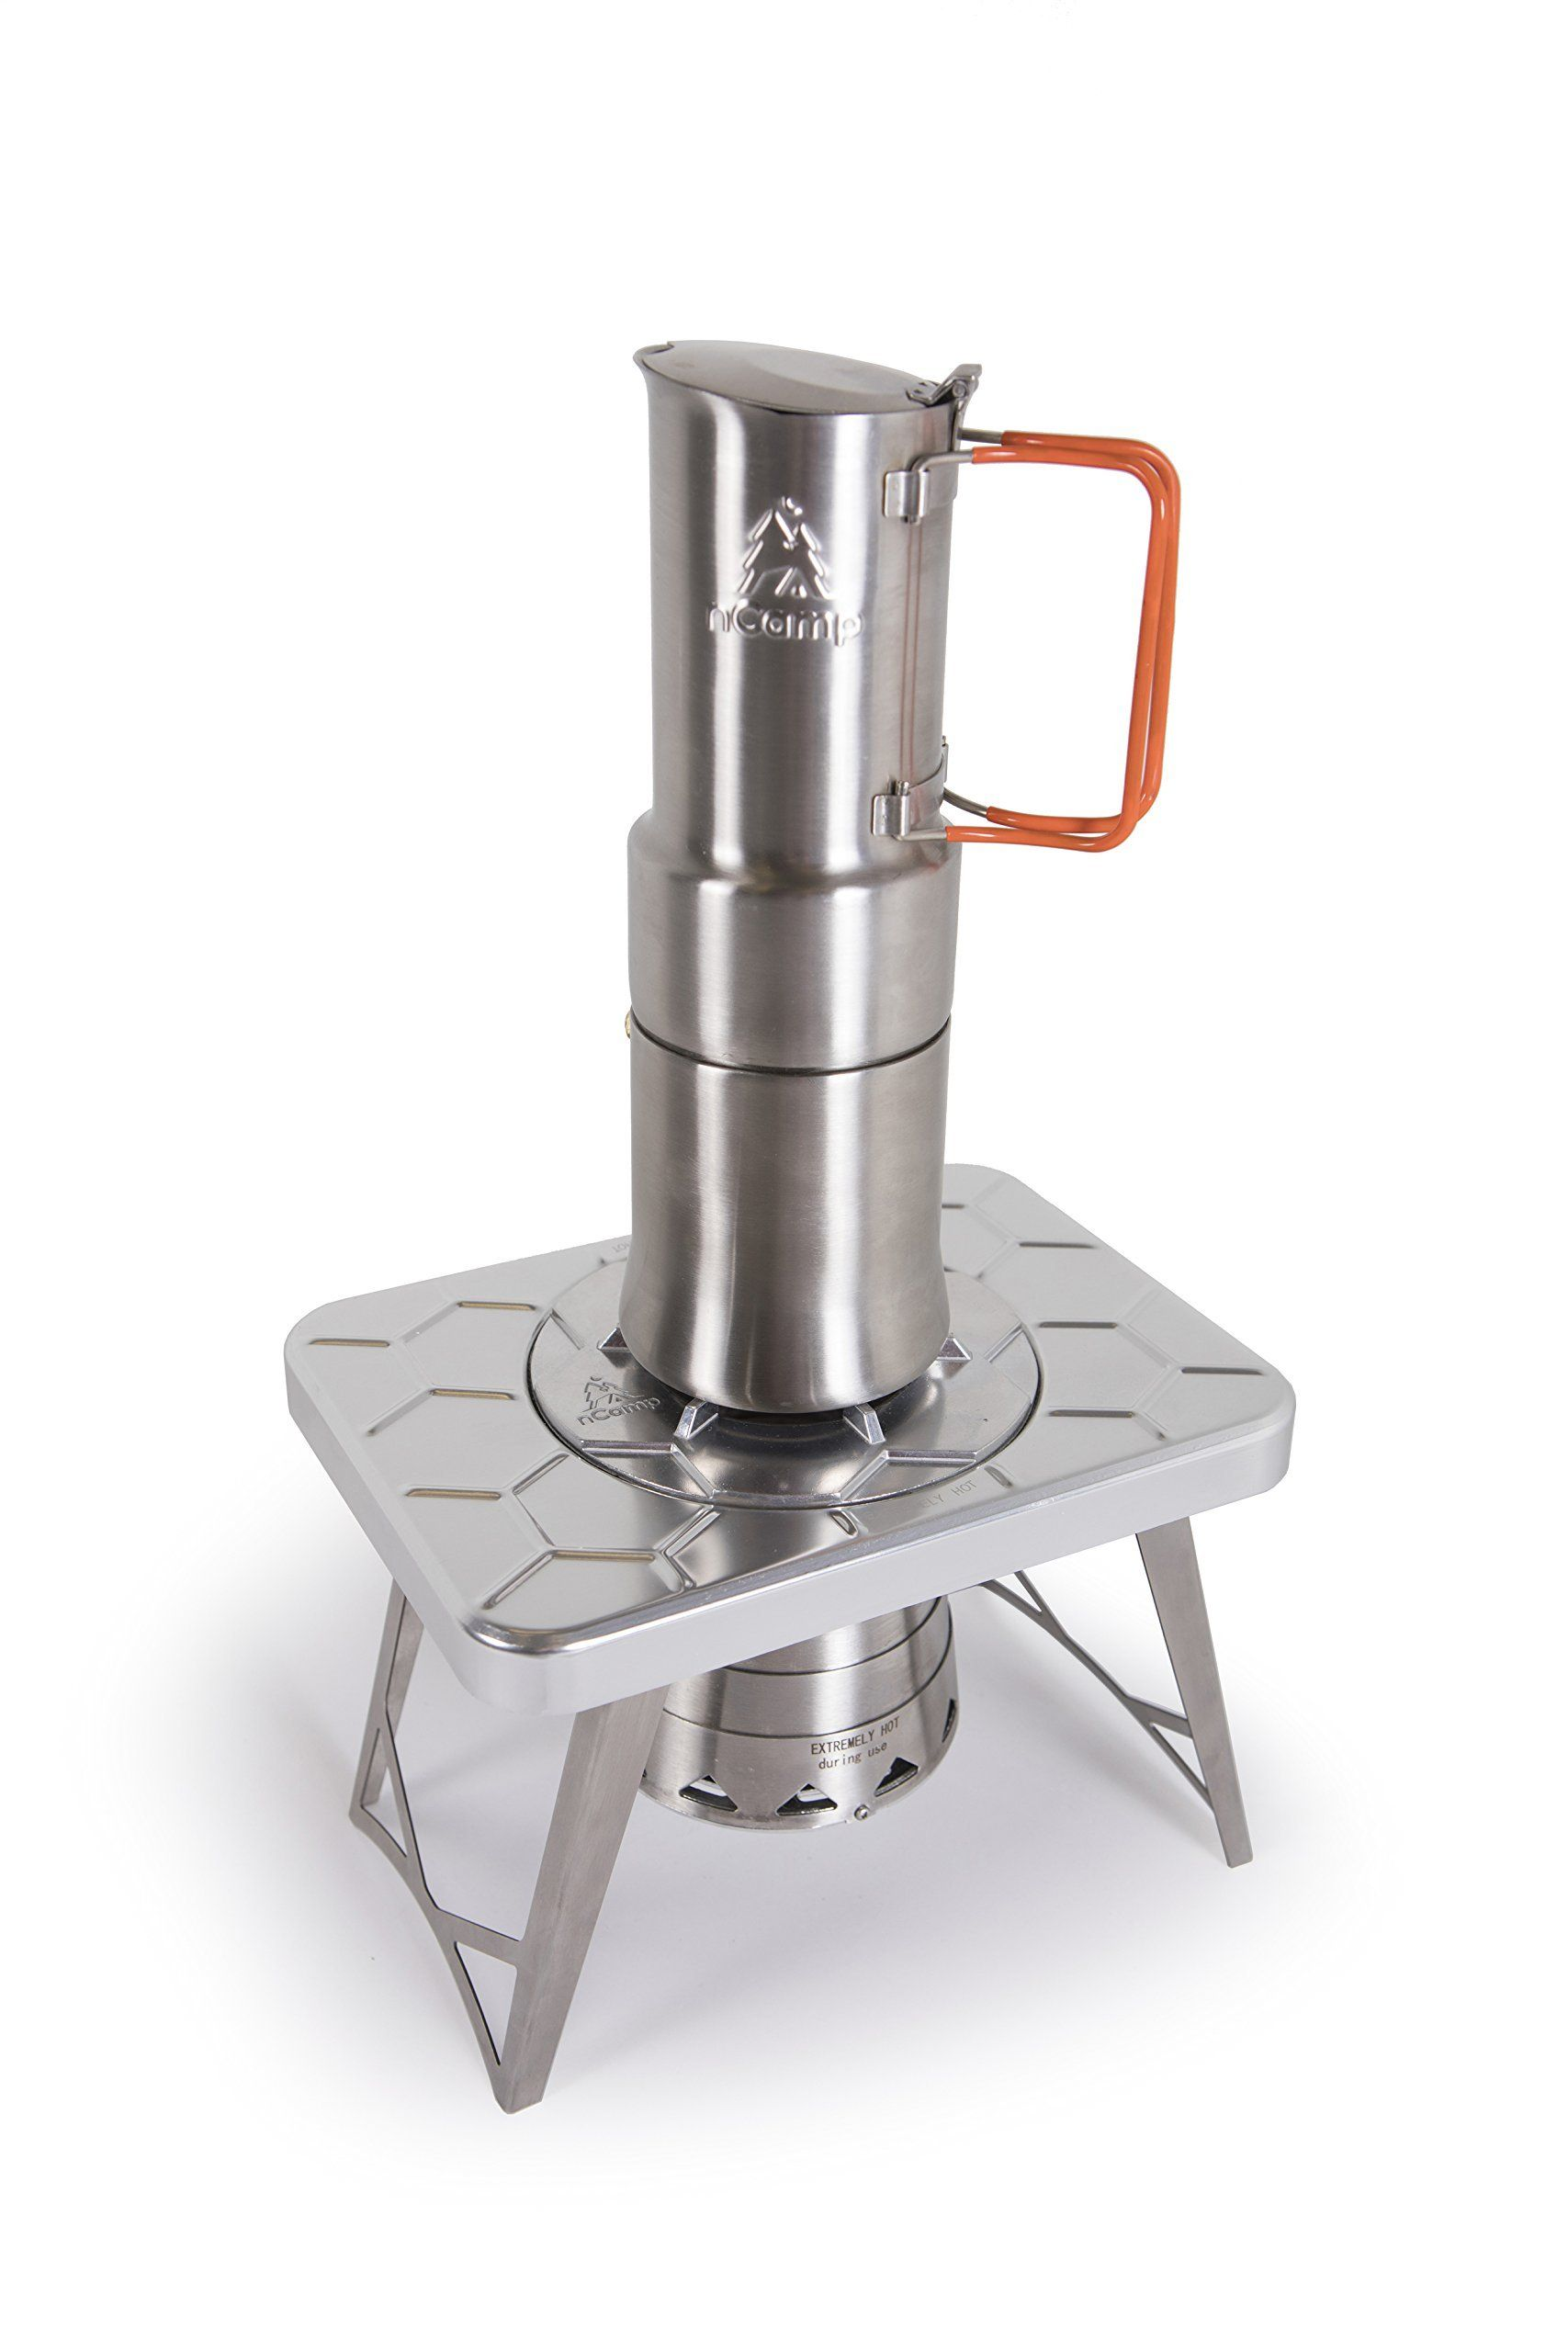 Compact EspressoStyle Café/Coffee Maker For Camping